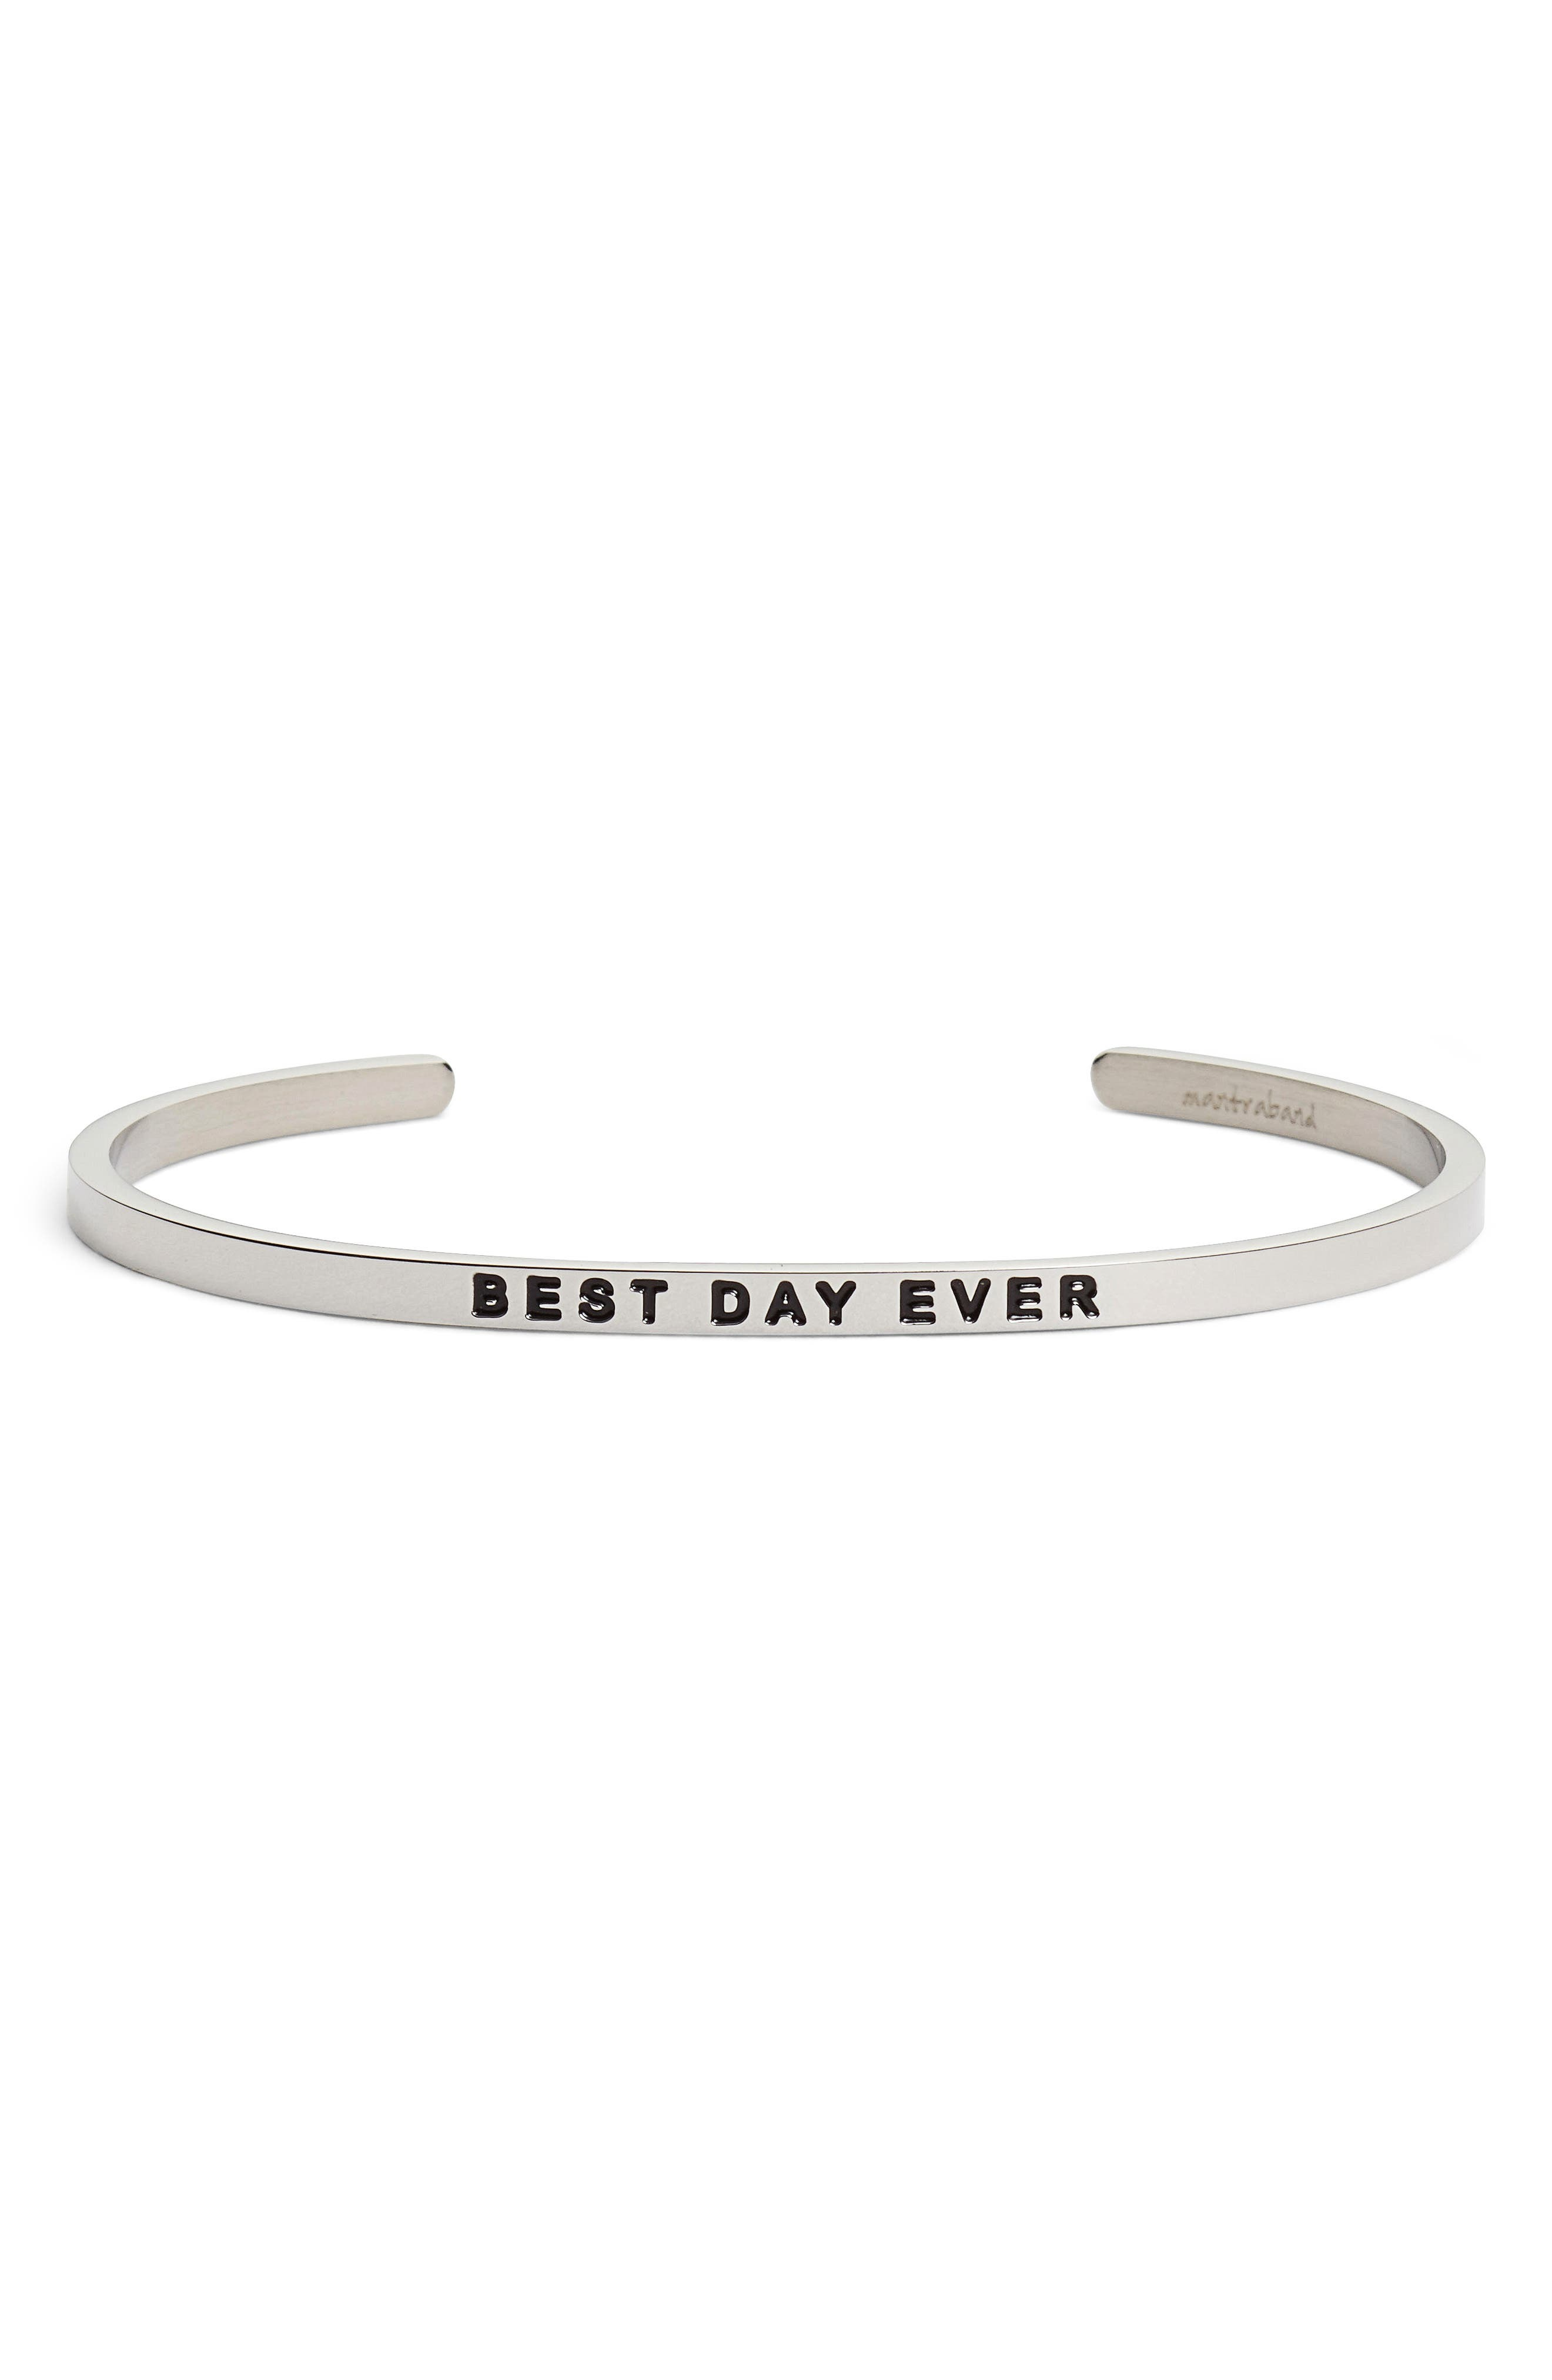 Best Day Ever Cuff,                         Main,                         color, 040